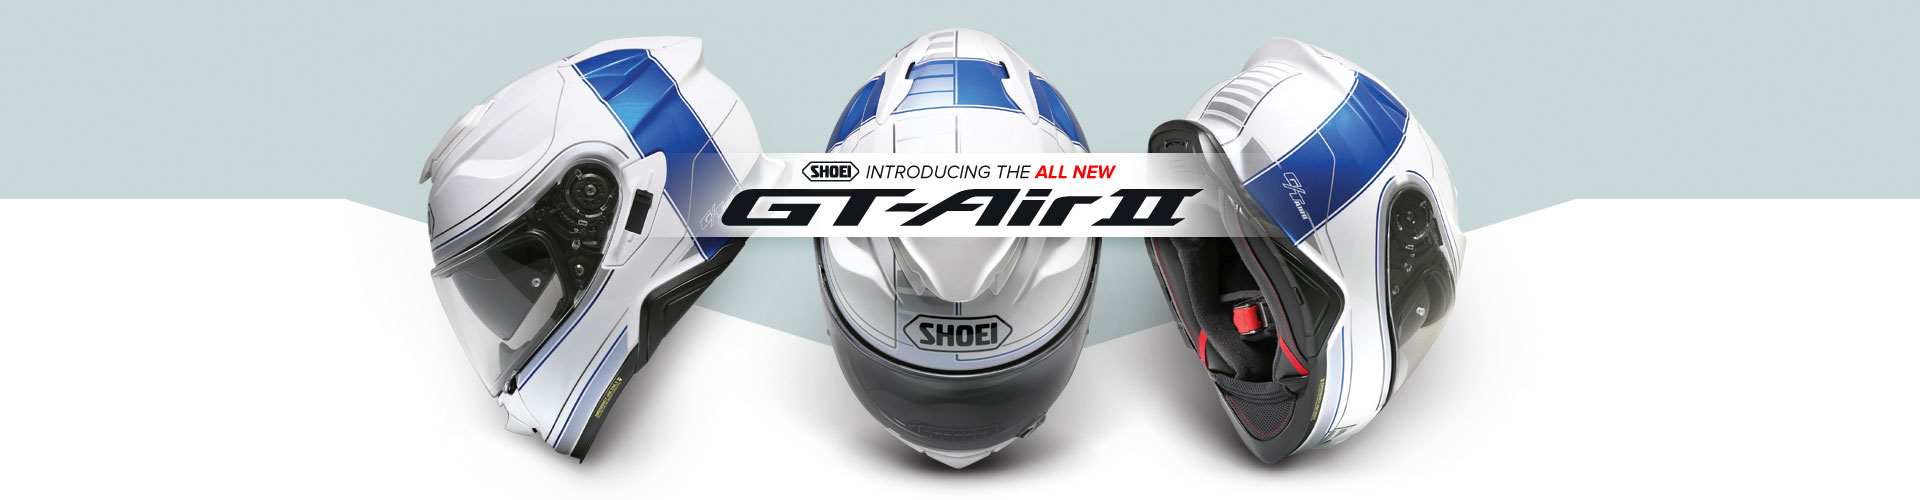 Shoei_GT-AirII_header_April_16